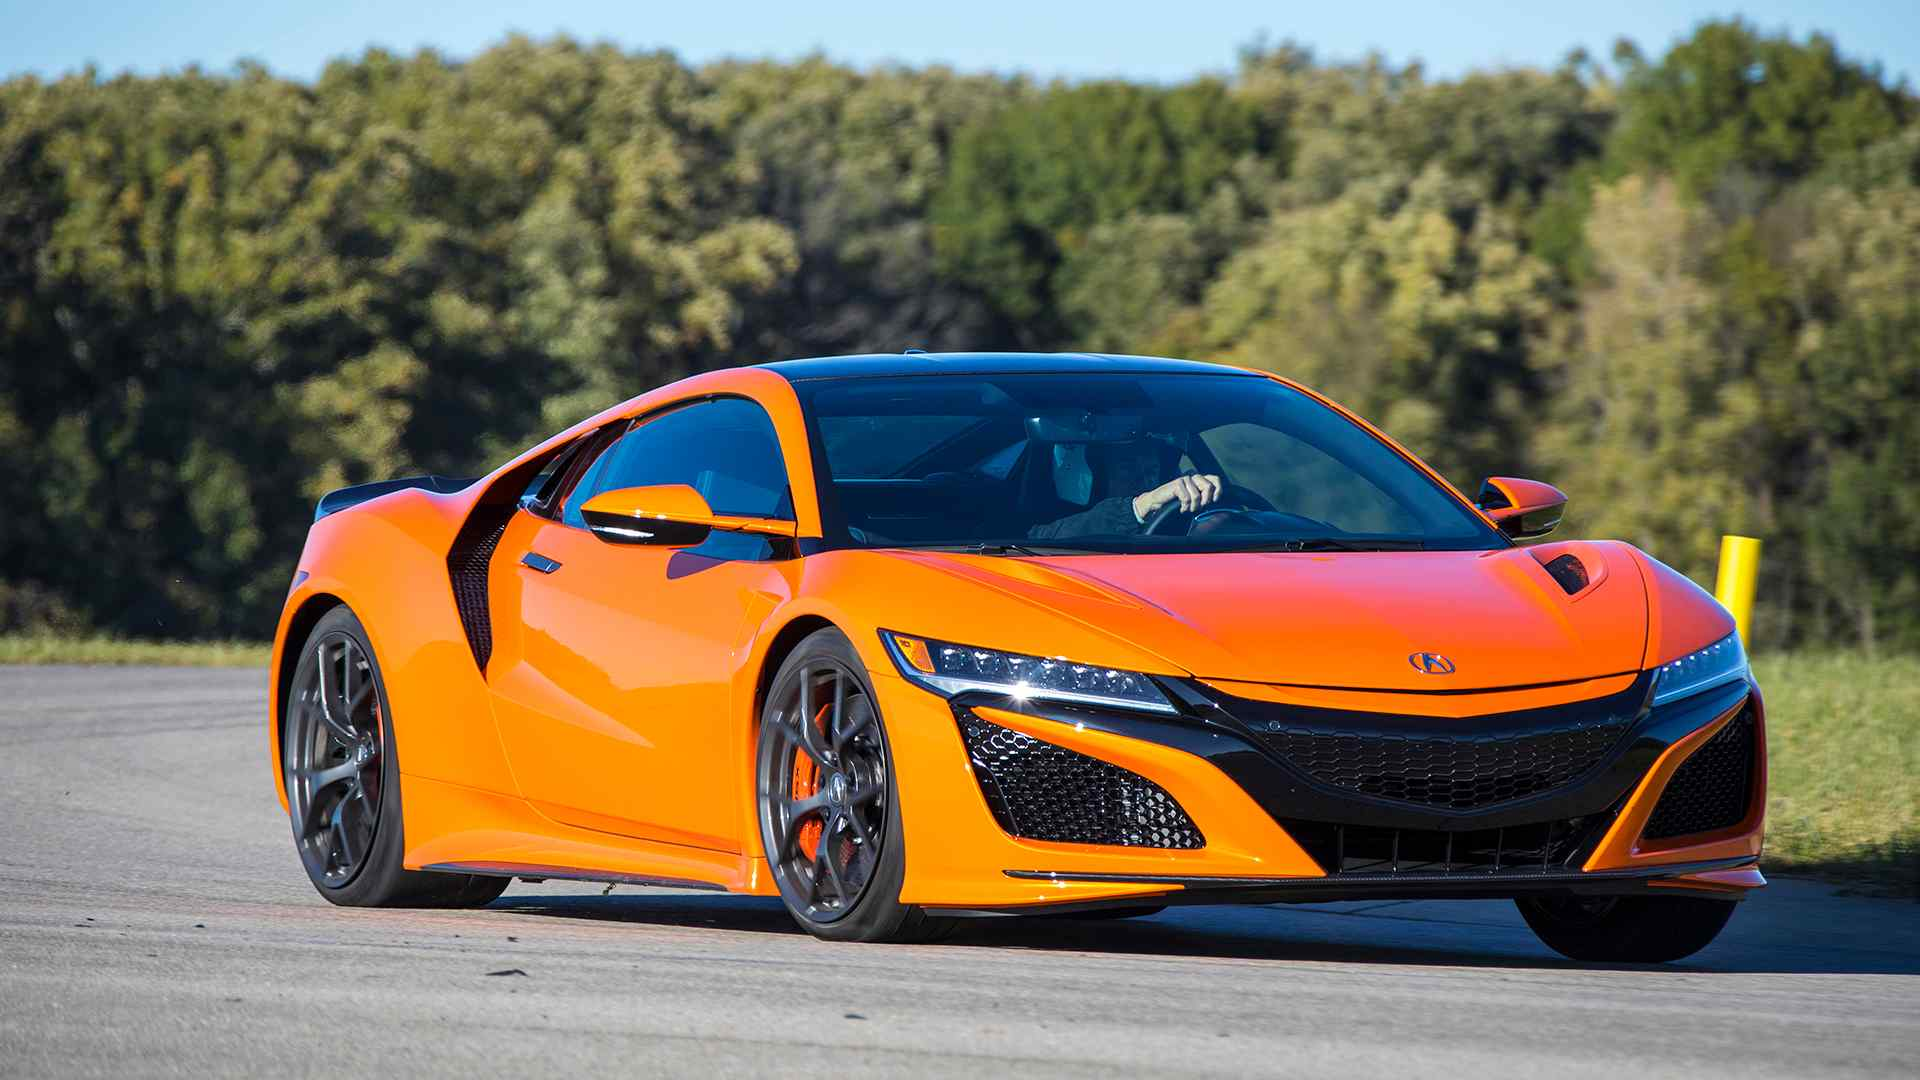 2019 Acura Nsx First Drive One Foot Out Of The Shadows